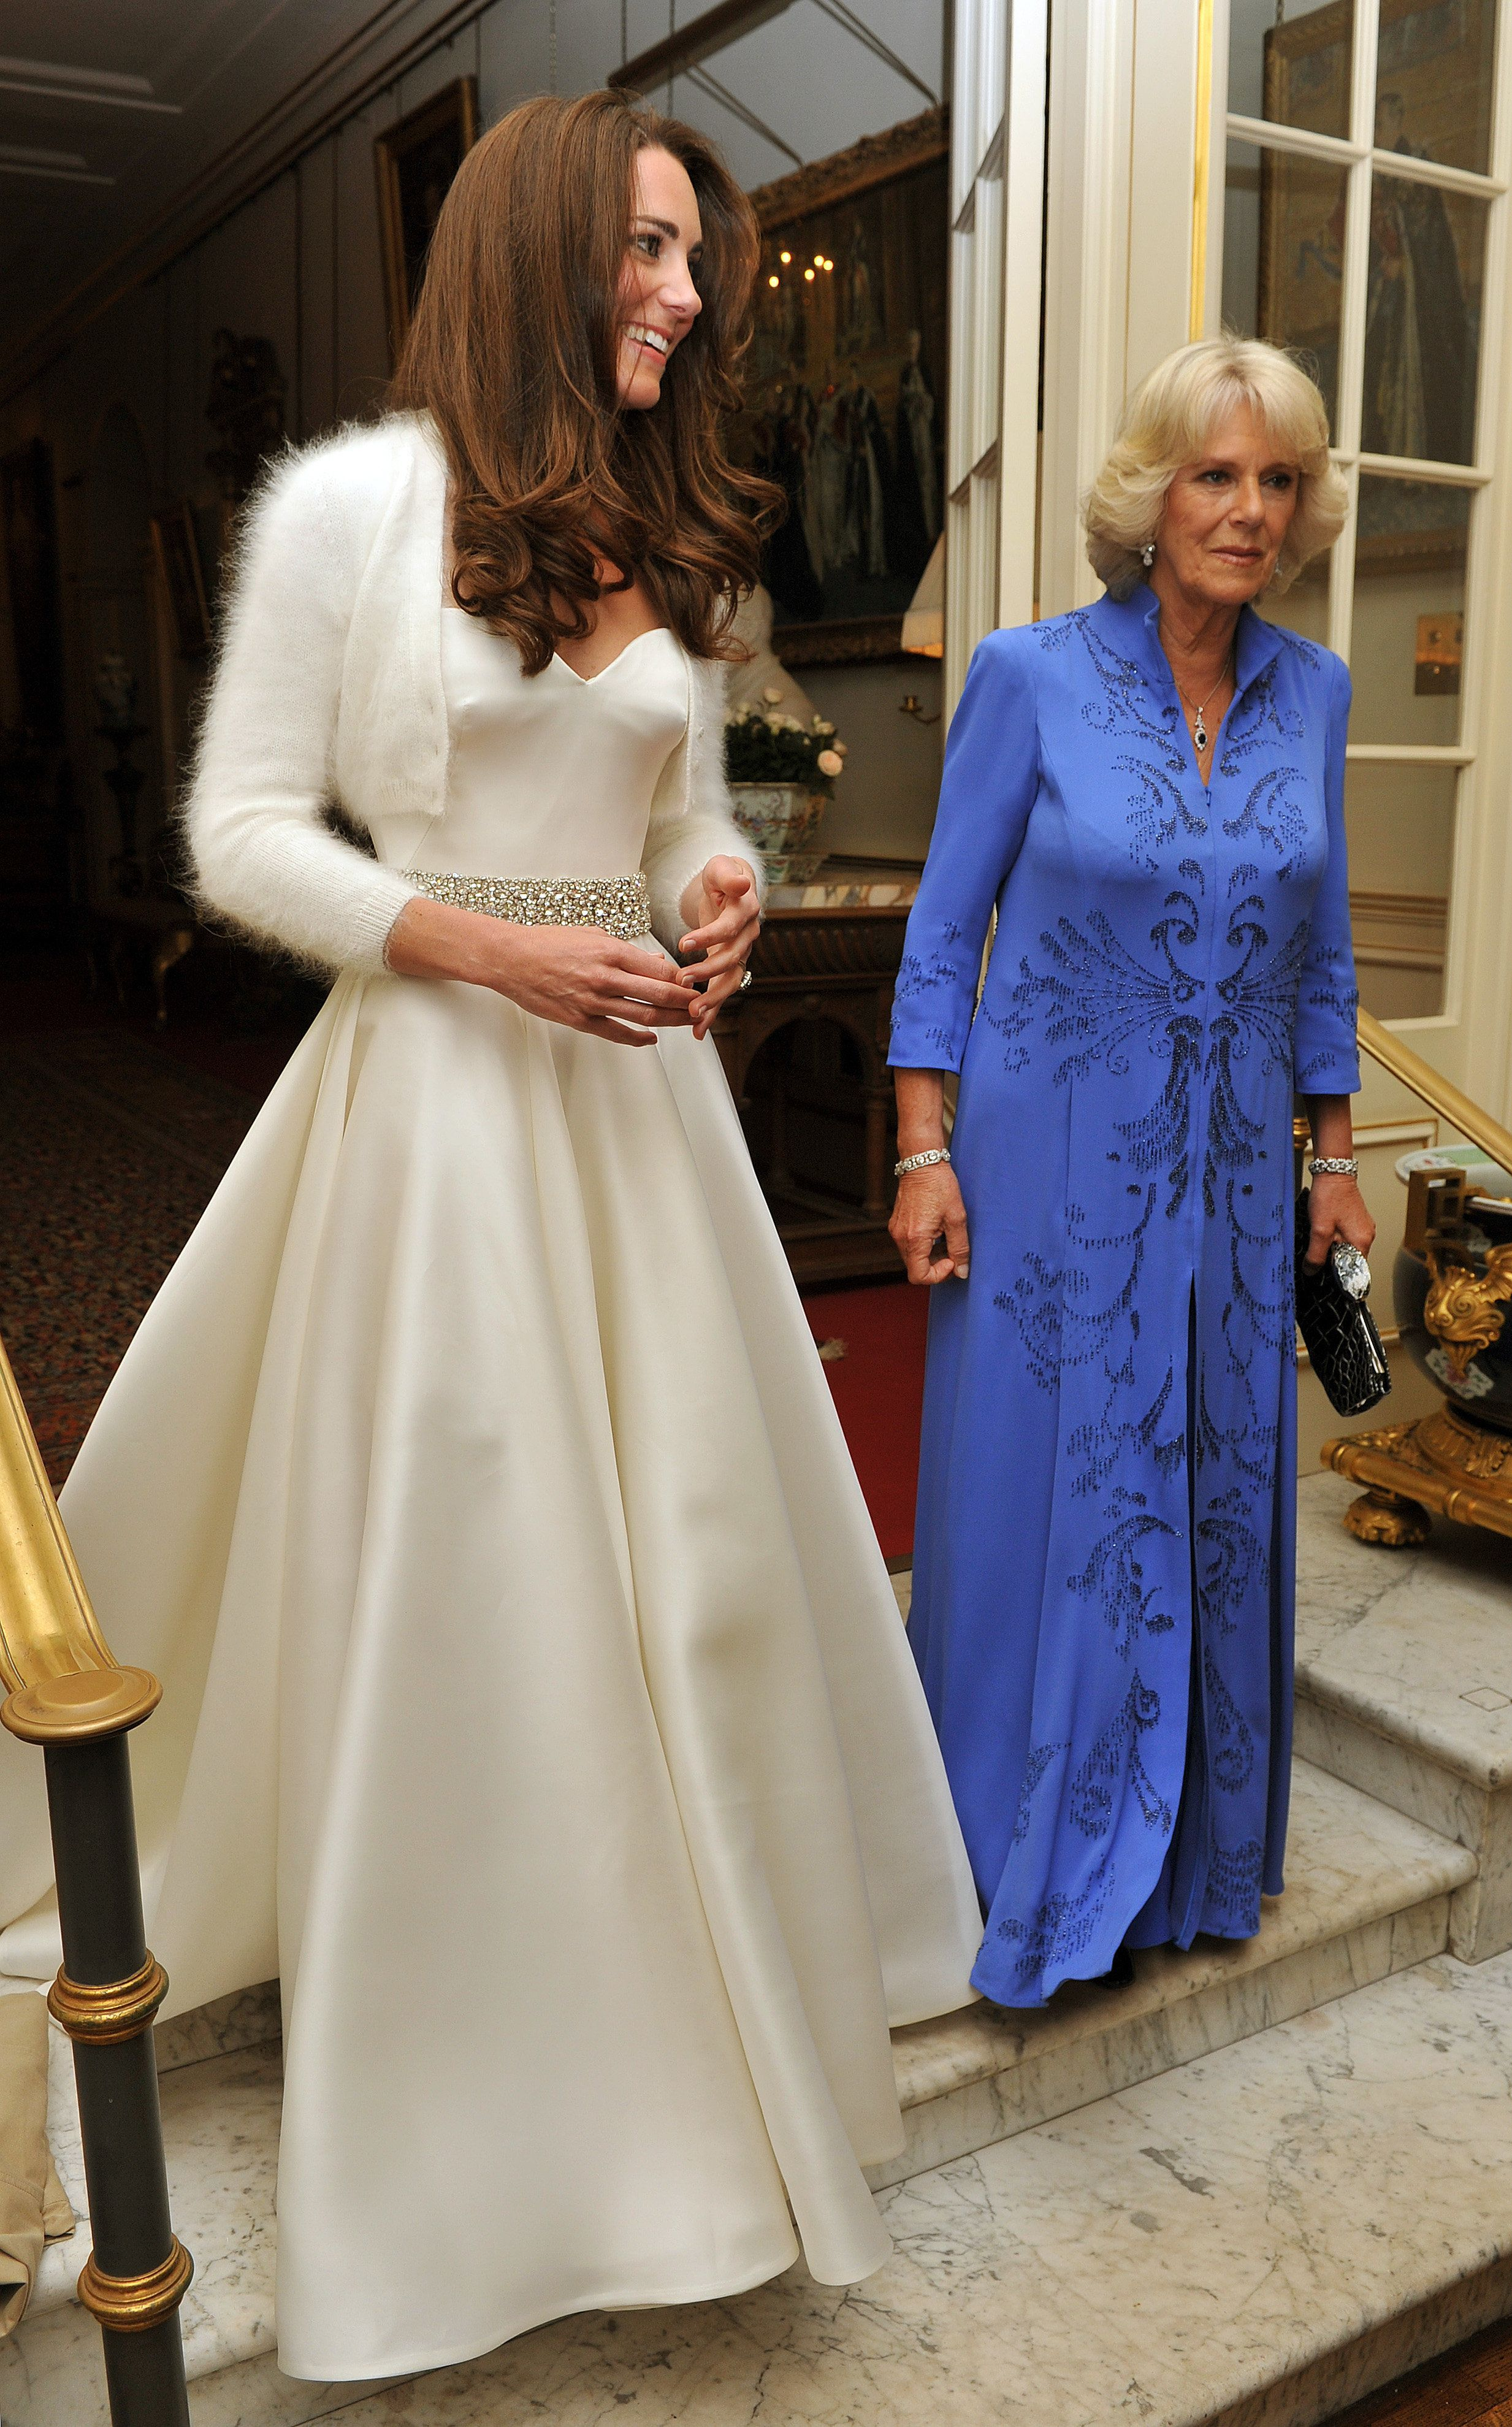 Later in the evening, the new Duchess of Cambridge changed into a less-formal Sarah Burton for Alexander McQueen go